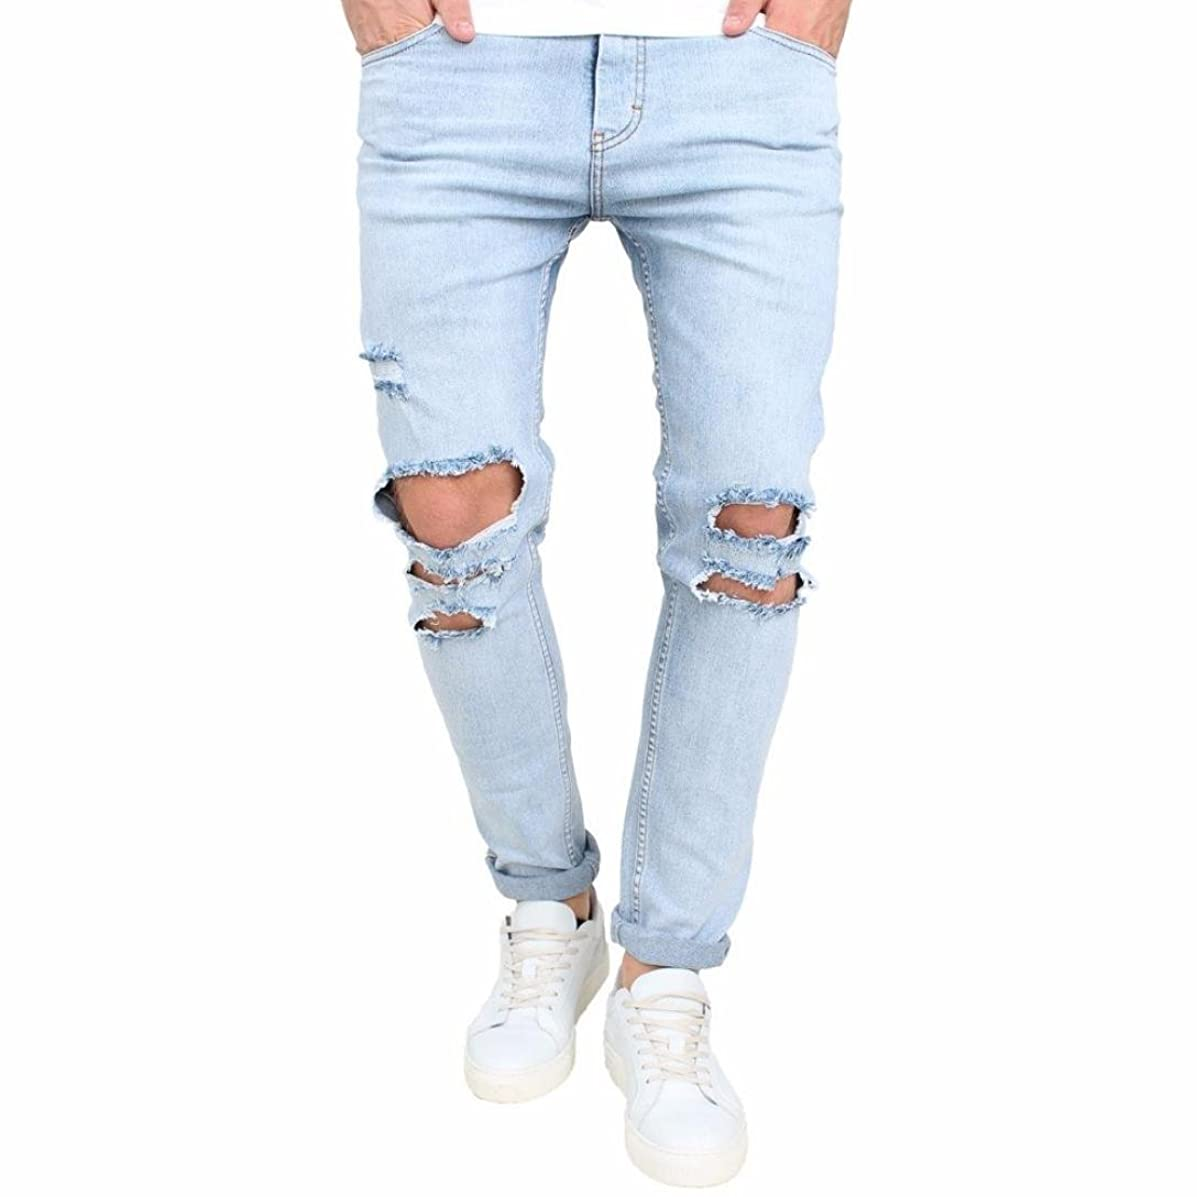 Men Jeans Daoroka Men's Ripped Slim Fit Straight Denim Motorcycle with Broken Holes Younger-Looking Pants